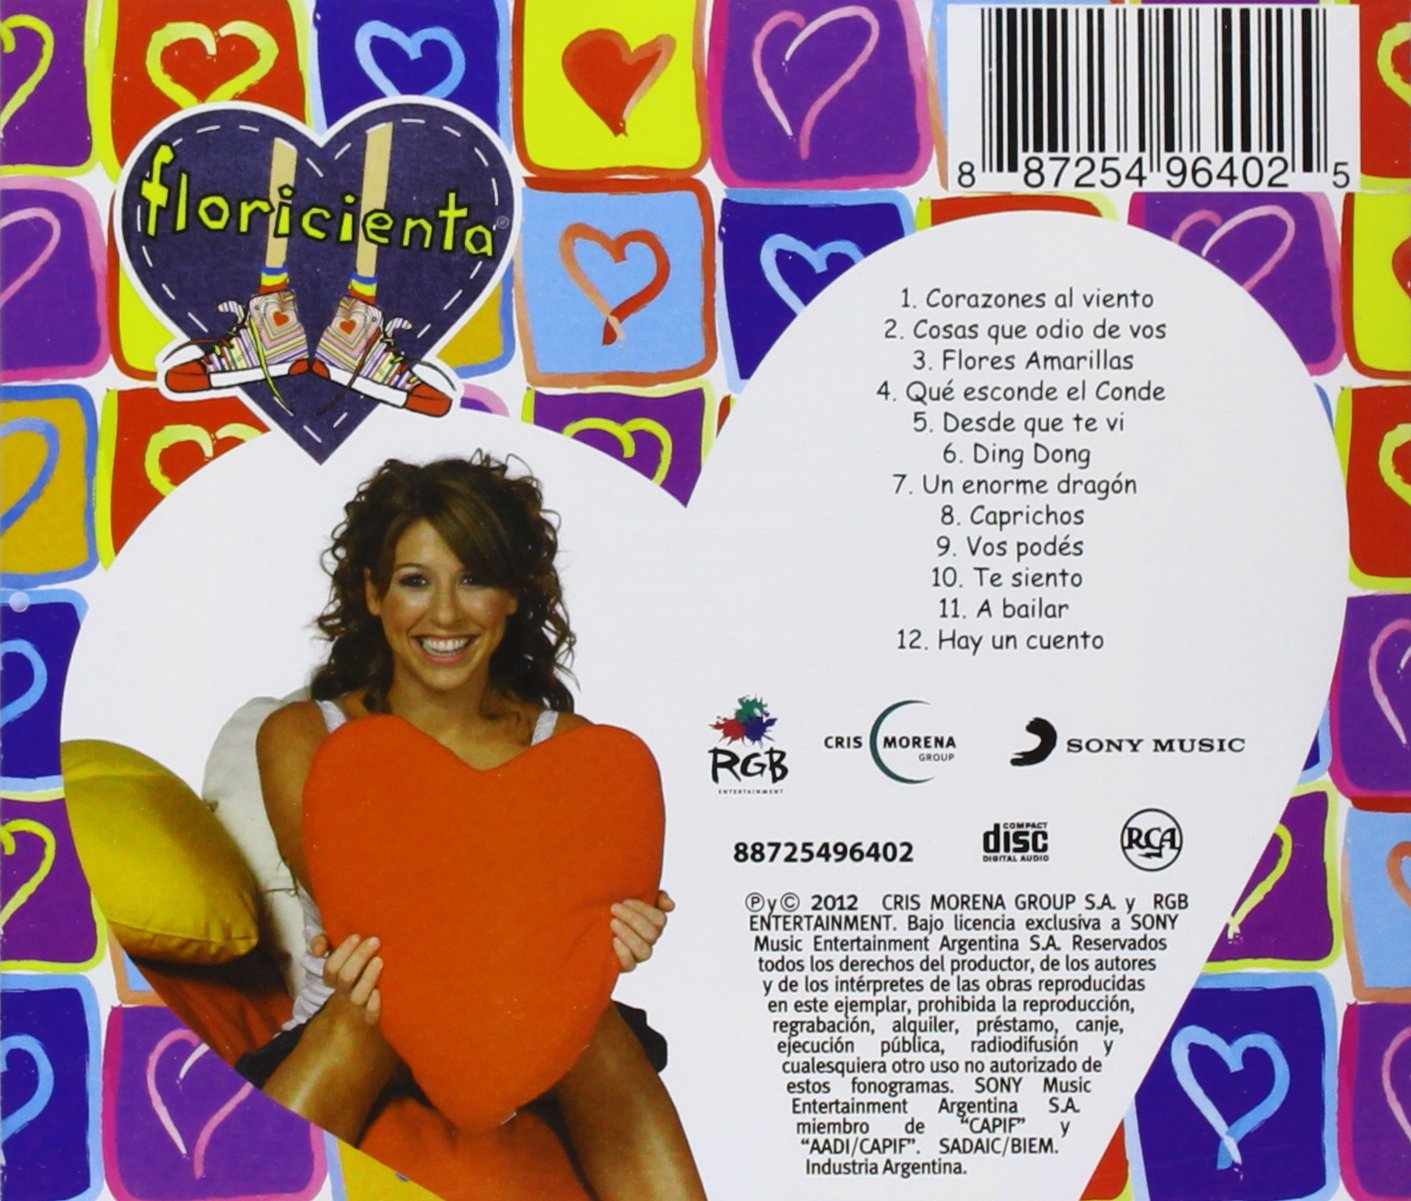 Floricienta Amazon Co Uk Music